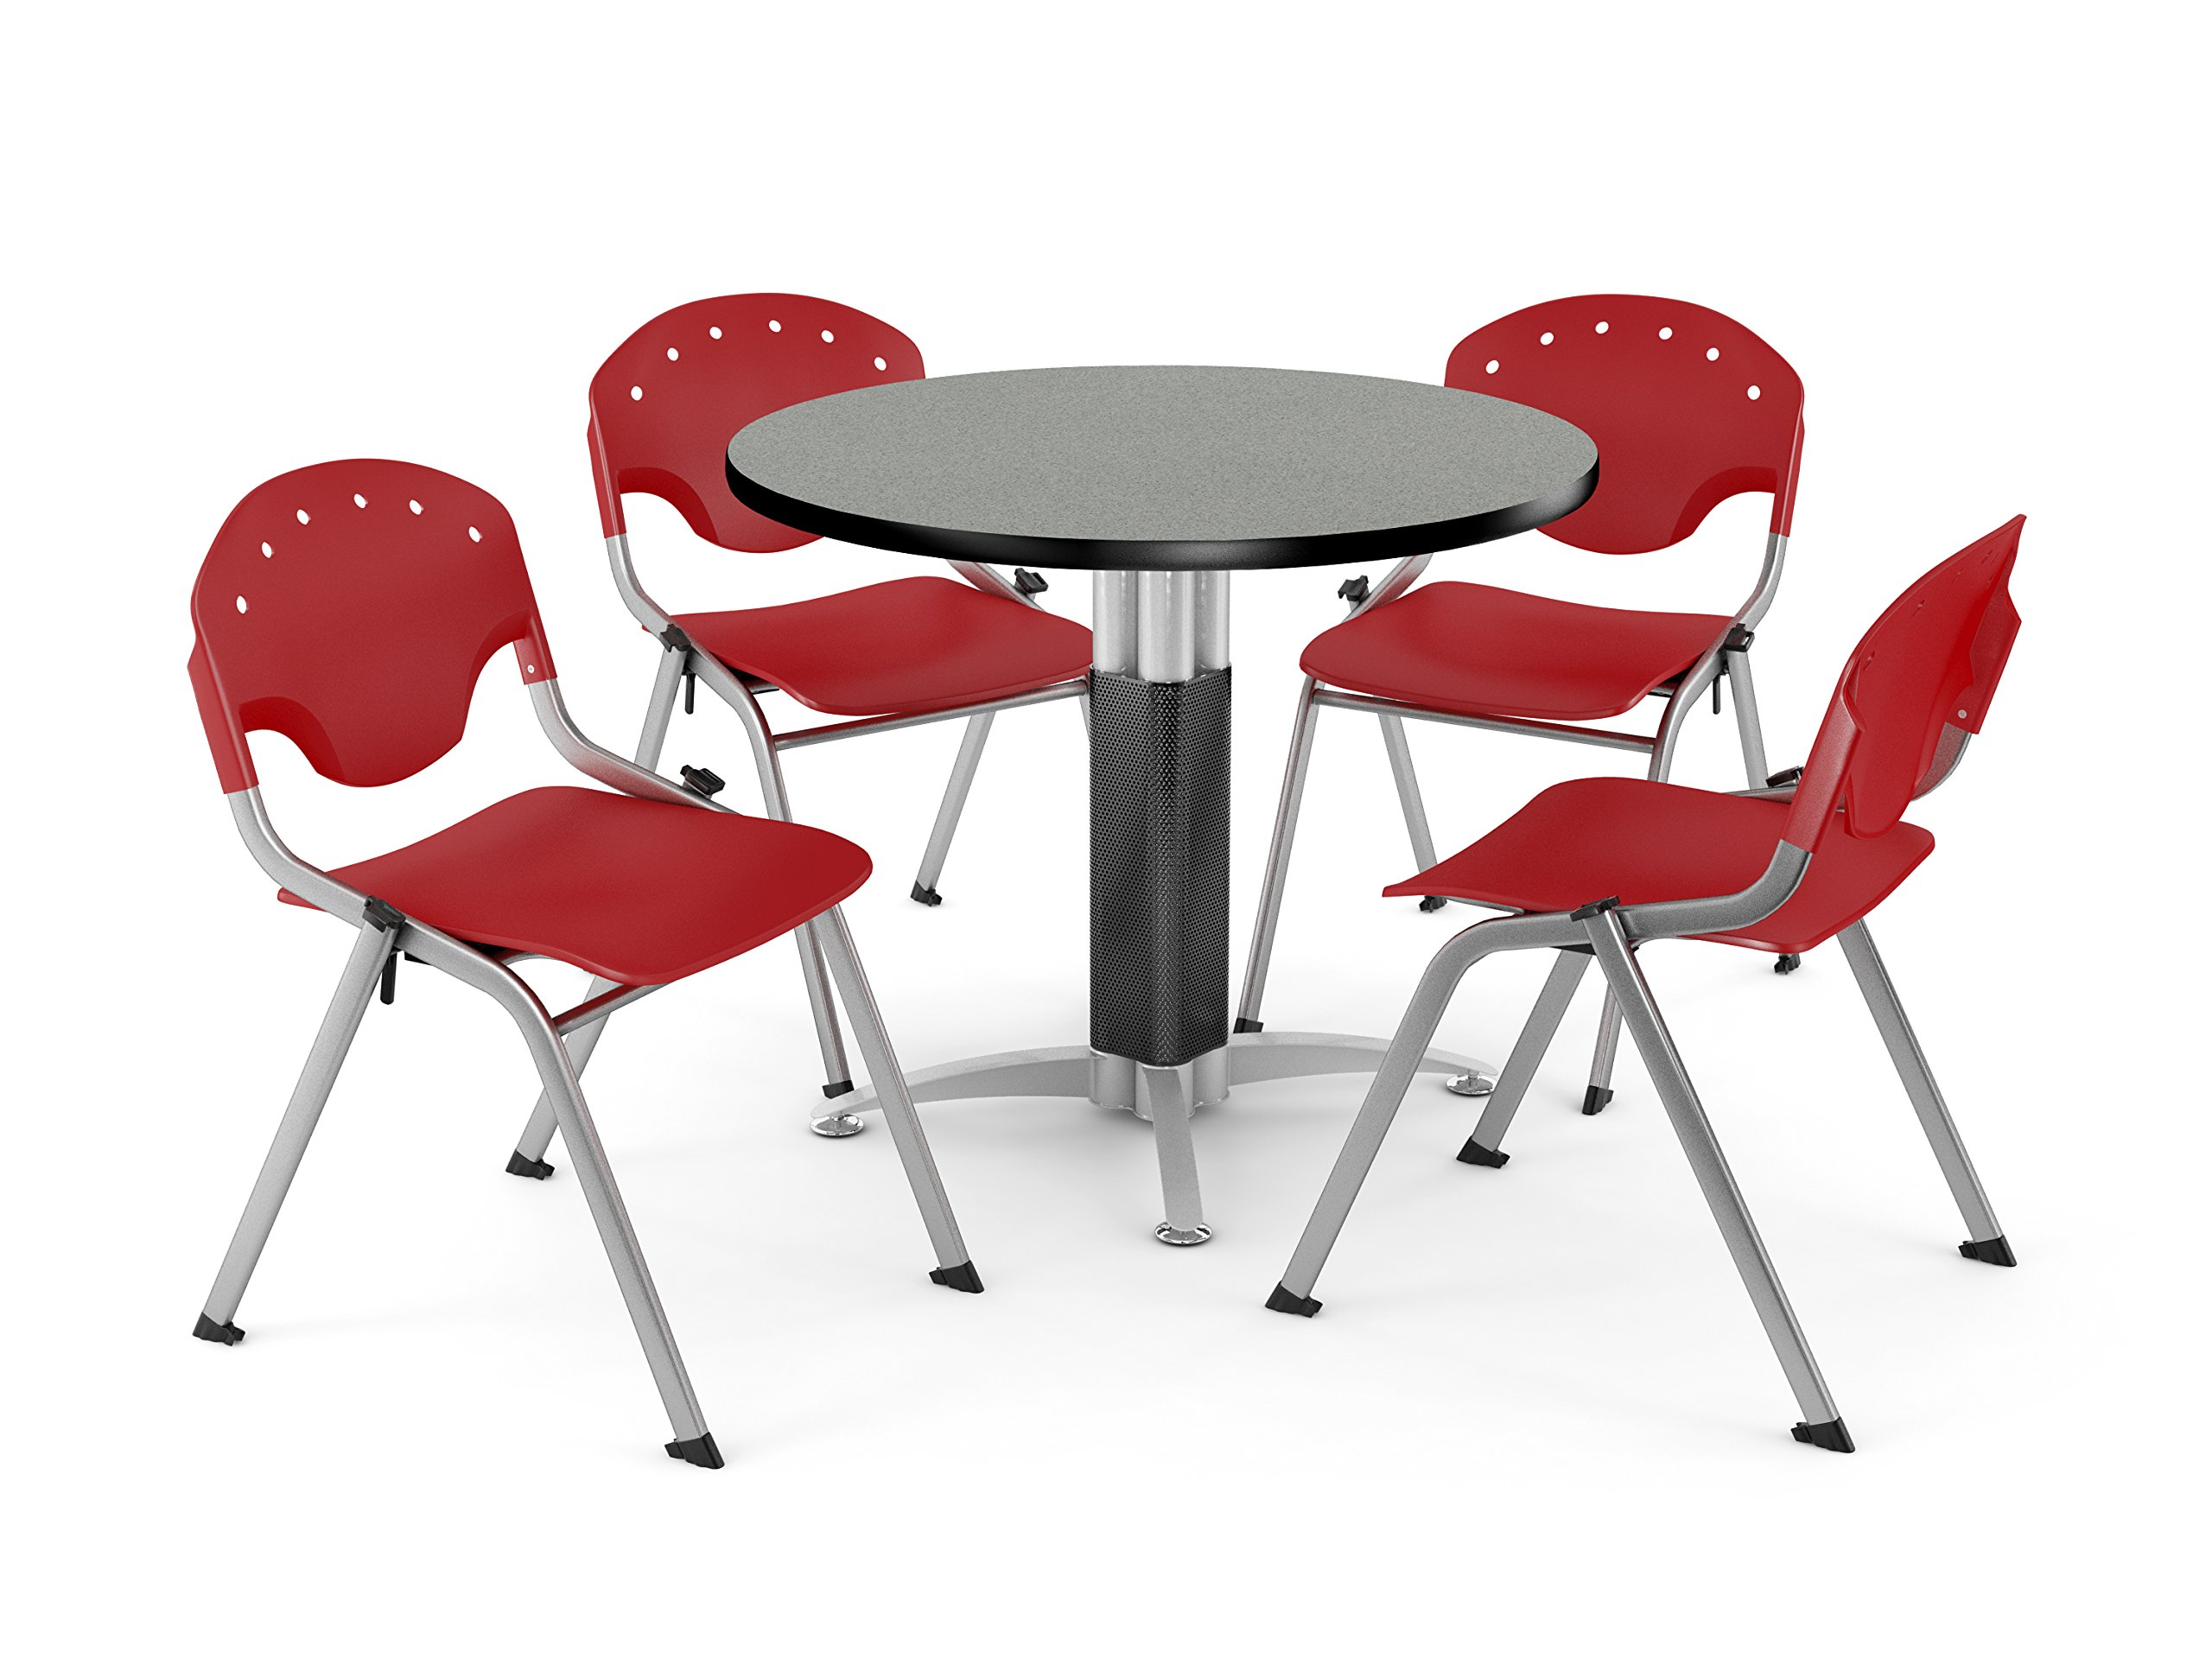 OFM PKG-BRK-023-0008 Breakroom Package, Gray Nebula Table/Red Chair